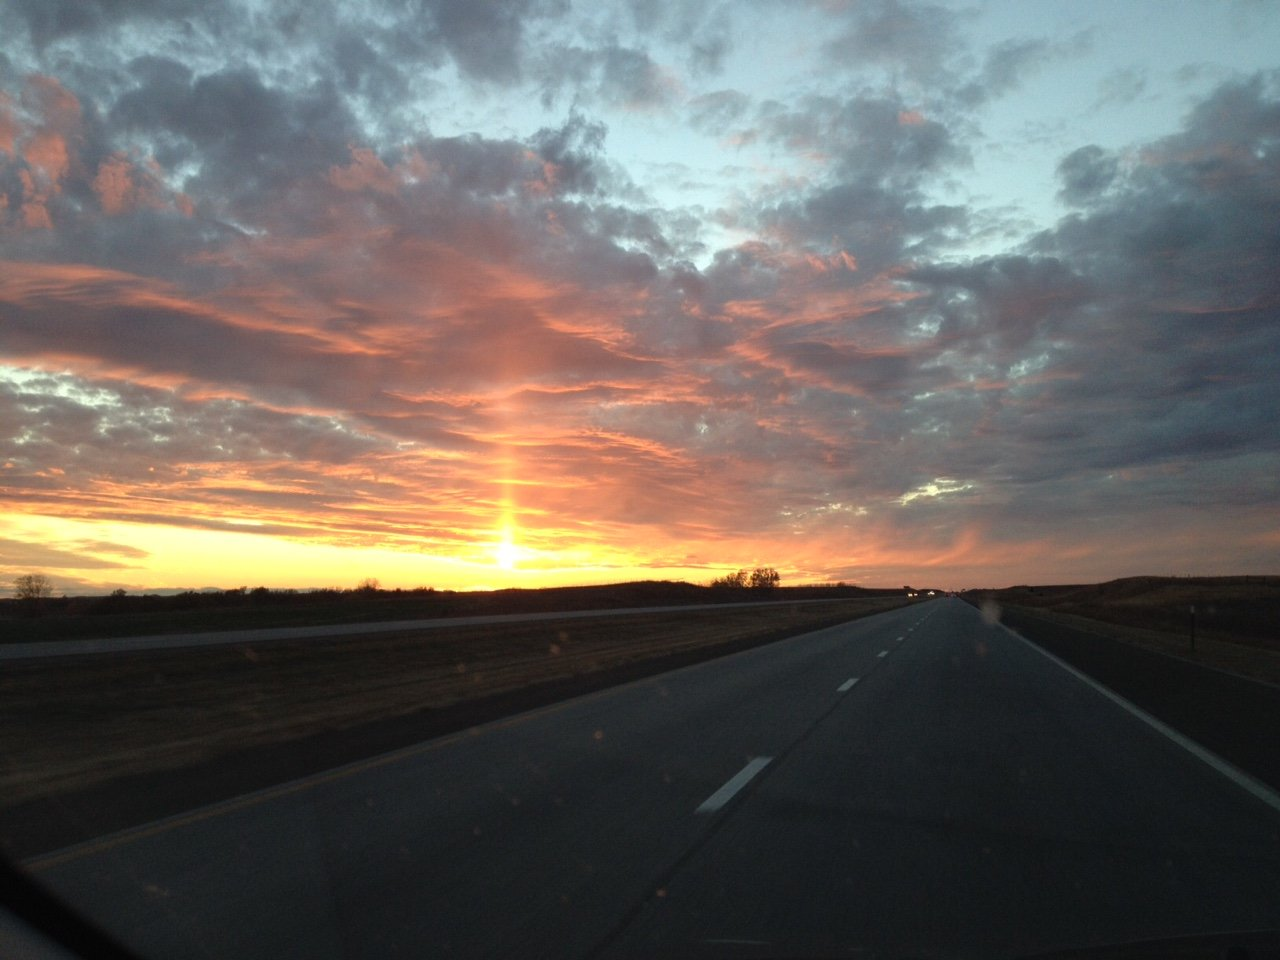 Kansas highway, heading west as the sun goes down (Photo by J. Schafer)